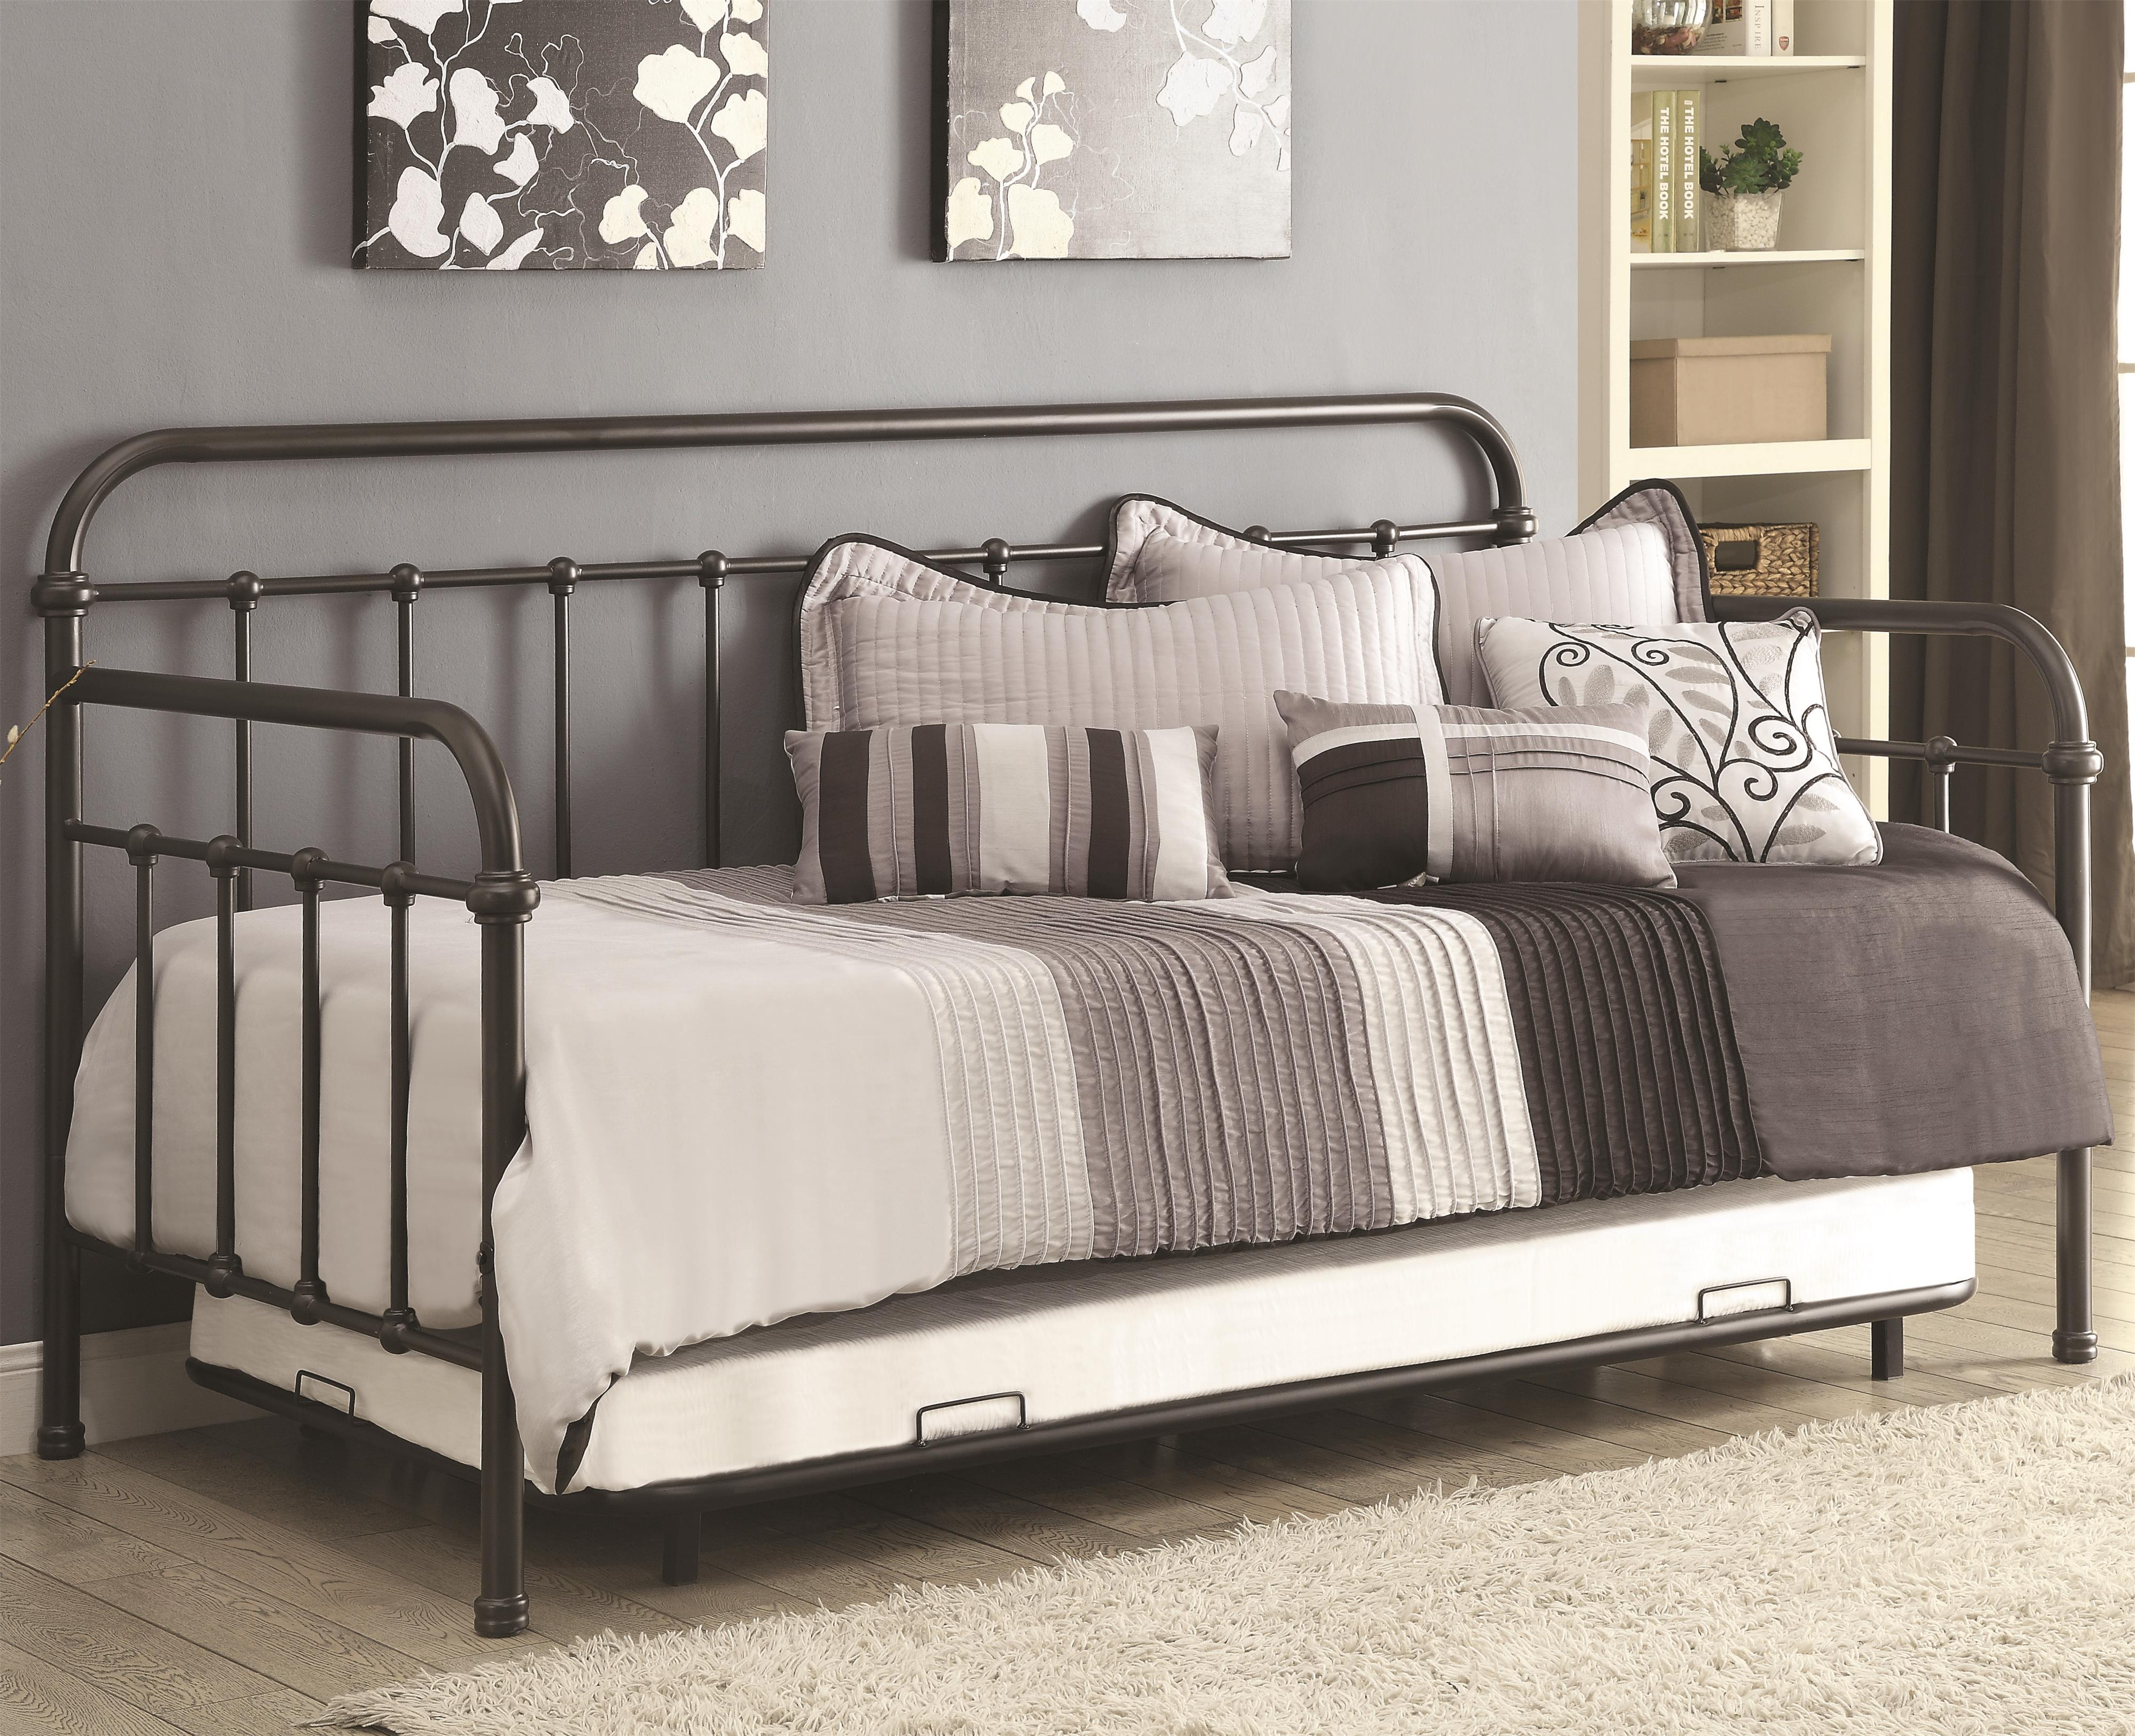 Daybeds by Coaster Daybed by Coaster at Northeast Factory Direct